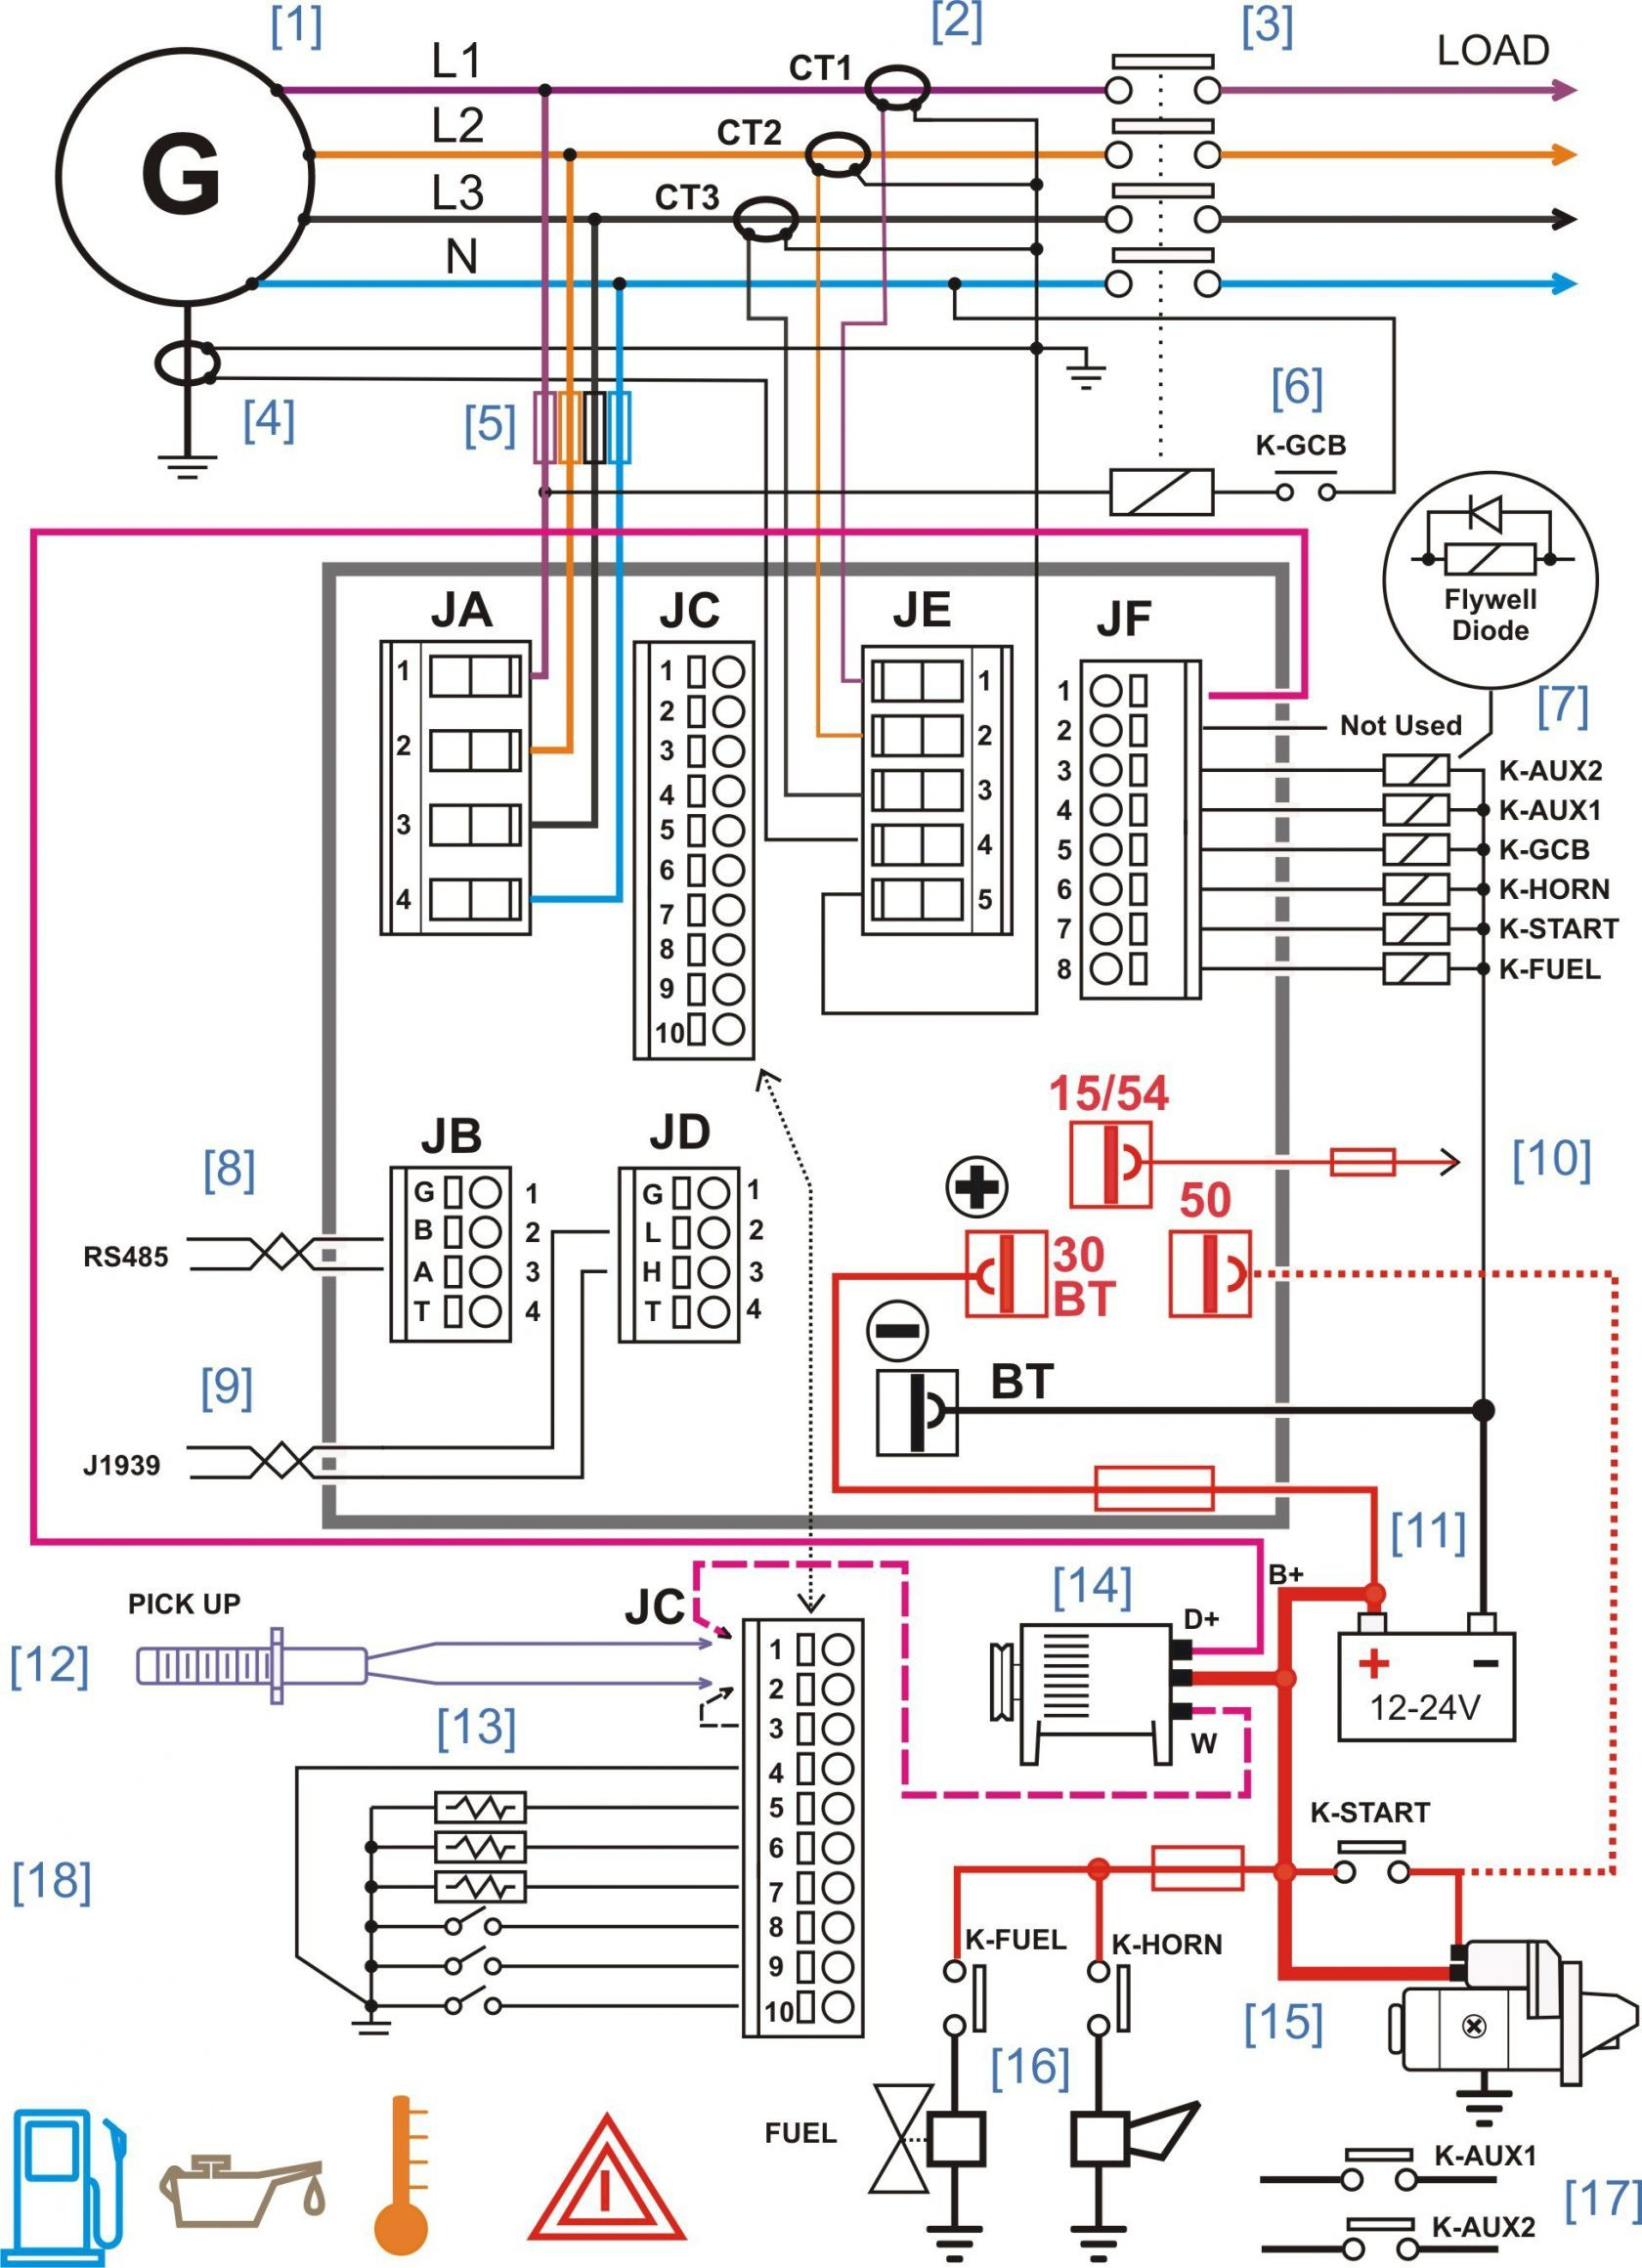 delco stereo wiring diagram Collection-Autozone Wiring Diagrams Unique Autozone Wiring Diagrams Best Wiring Diagram